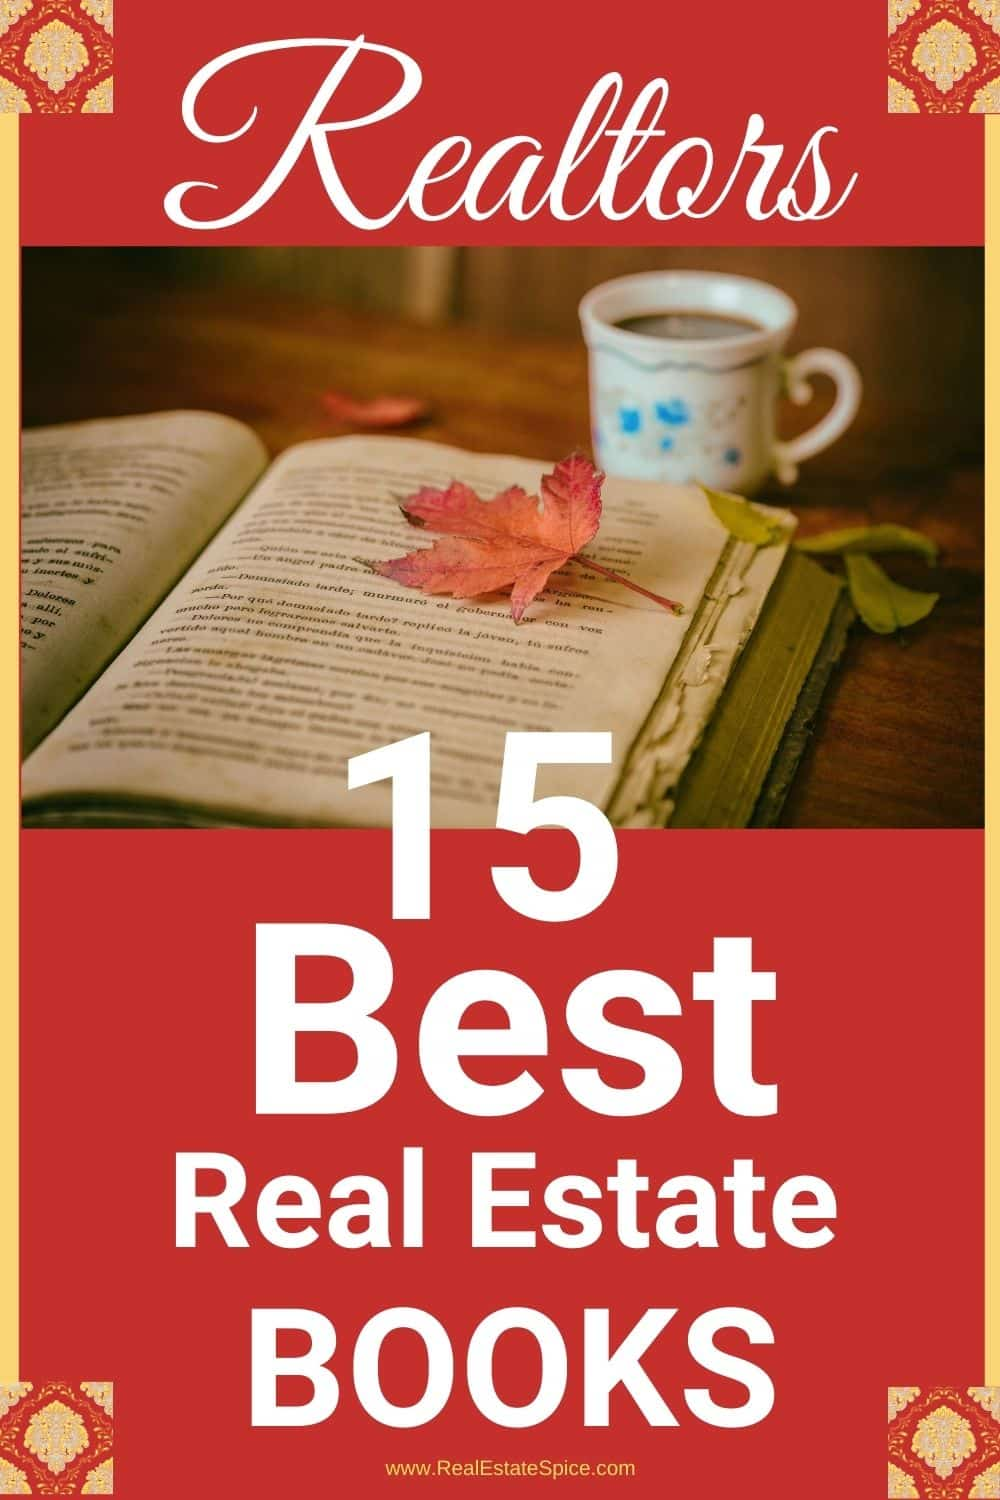 17 Best Books For Real Estate Agents - From Top Agents